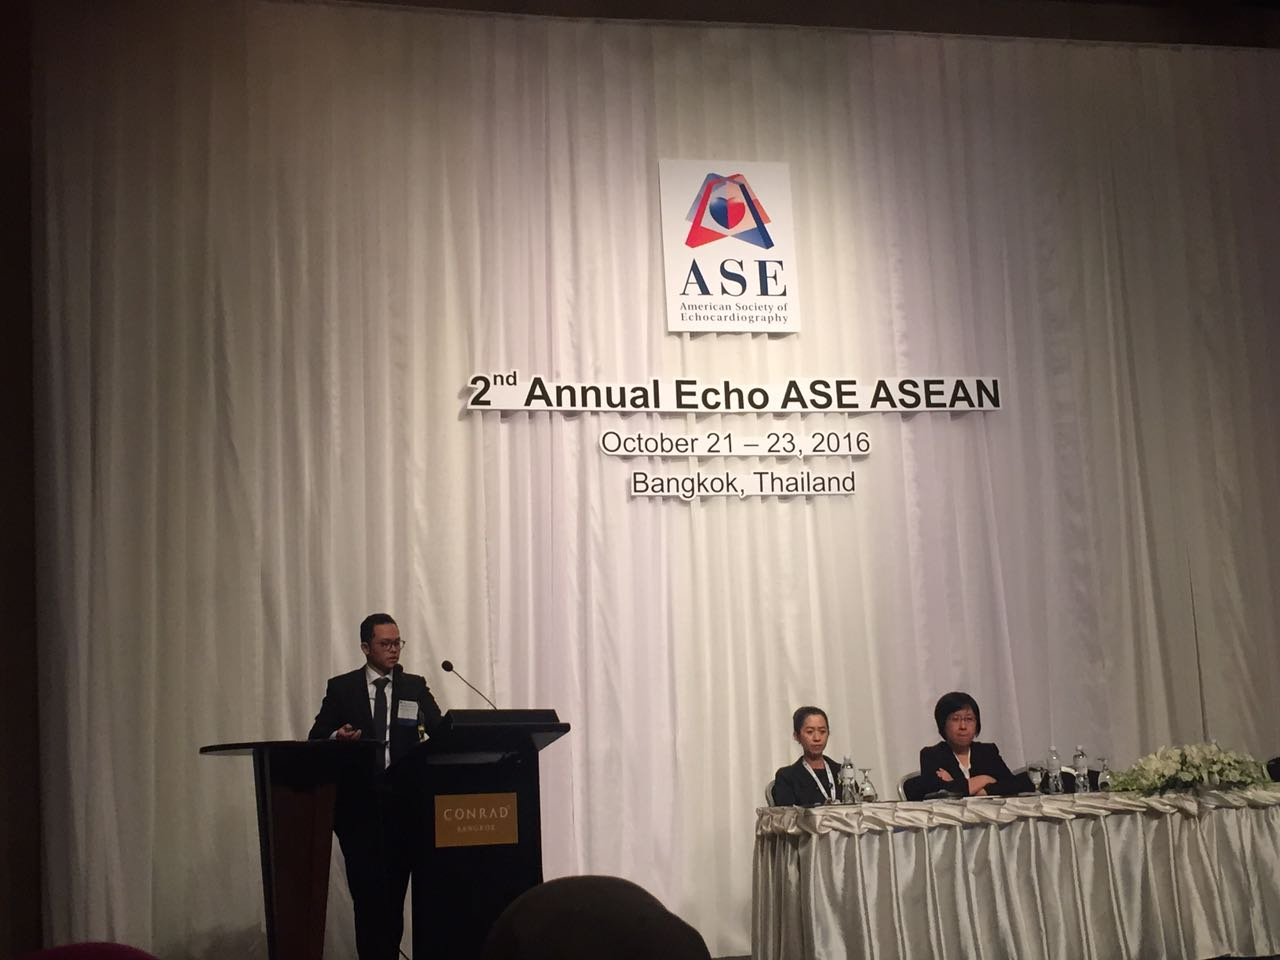 ISE Delegation at The 2nd Annual Echo ASE ASEAN 2016